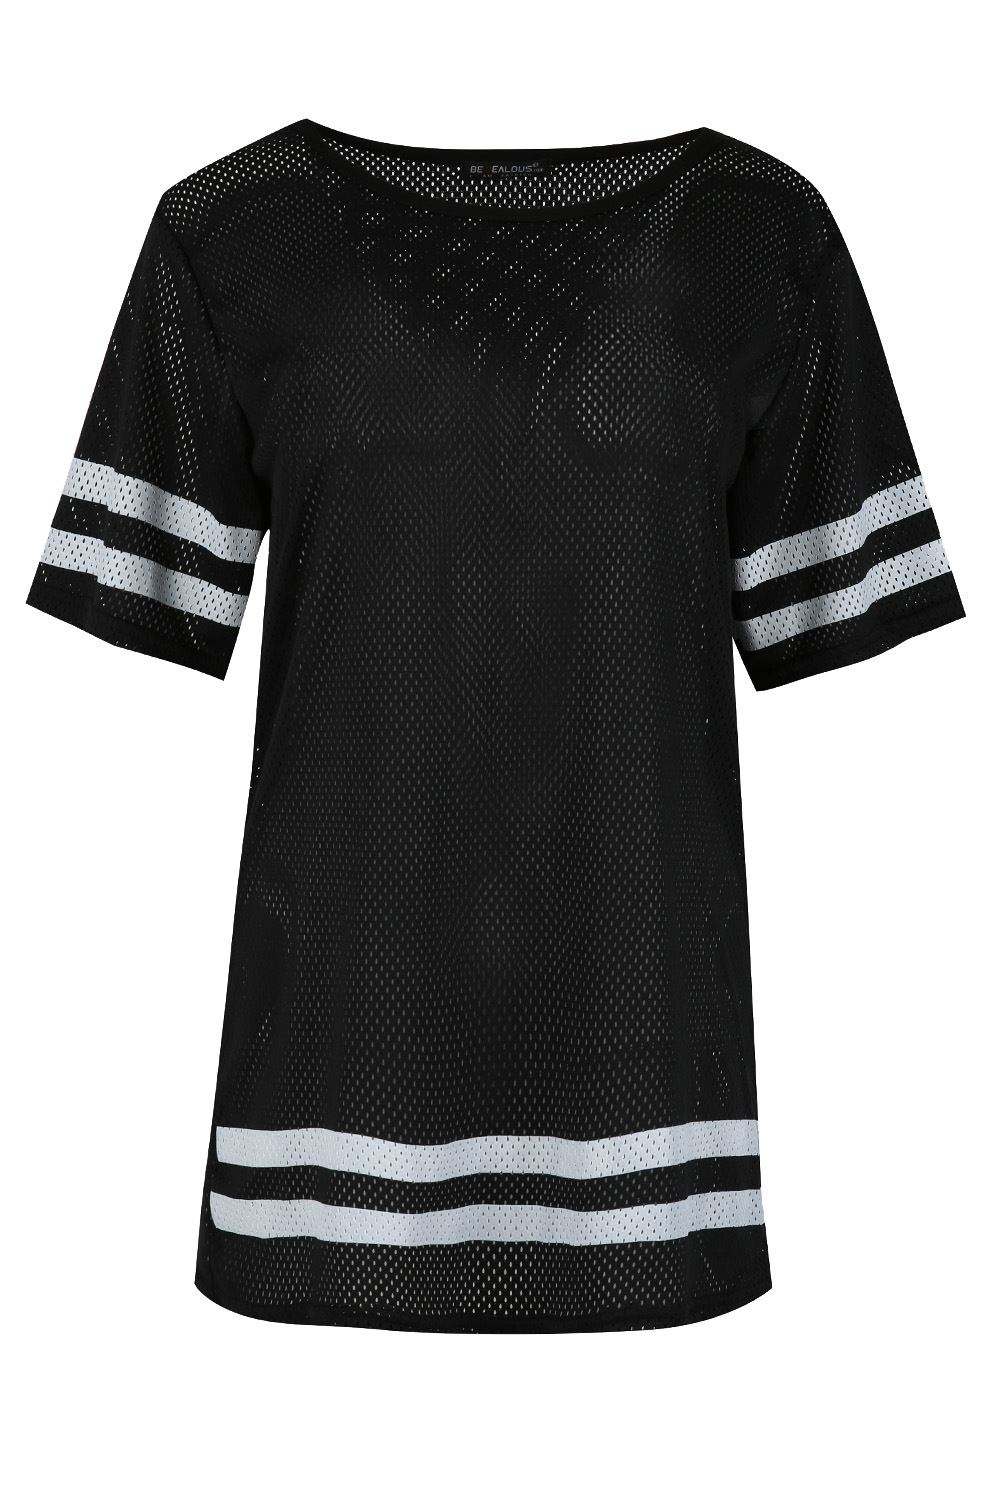 Classic T-Shirts, Super Soft Tri-Blend T-Shirts, Baseball Tees, Football T-Shirts and more!? Free Returns?High Quality Printing?Fast Shipping Find high quality printed Oversized Women's T .